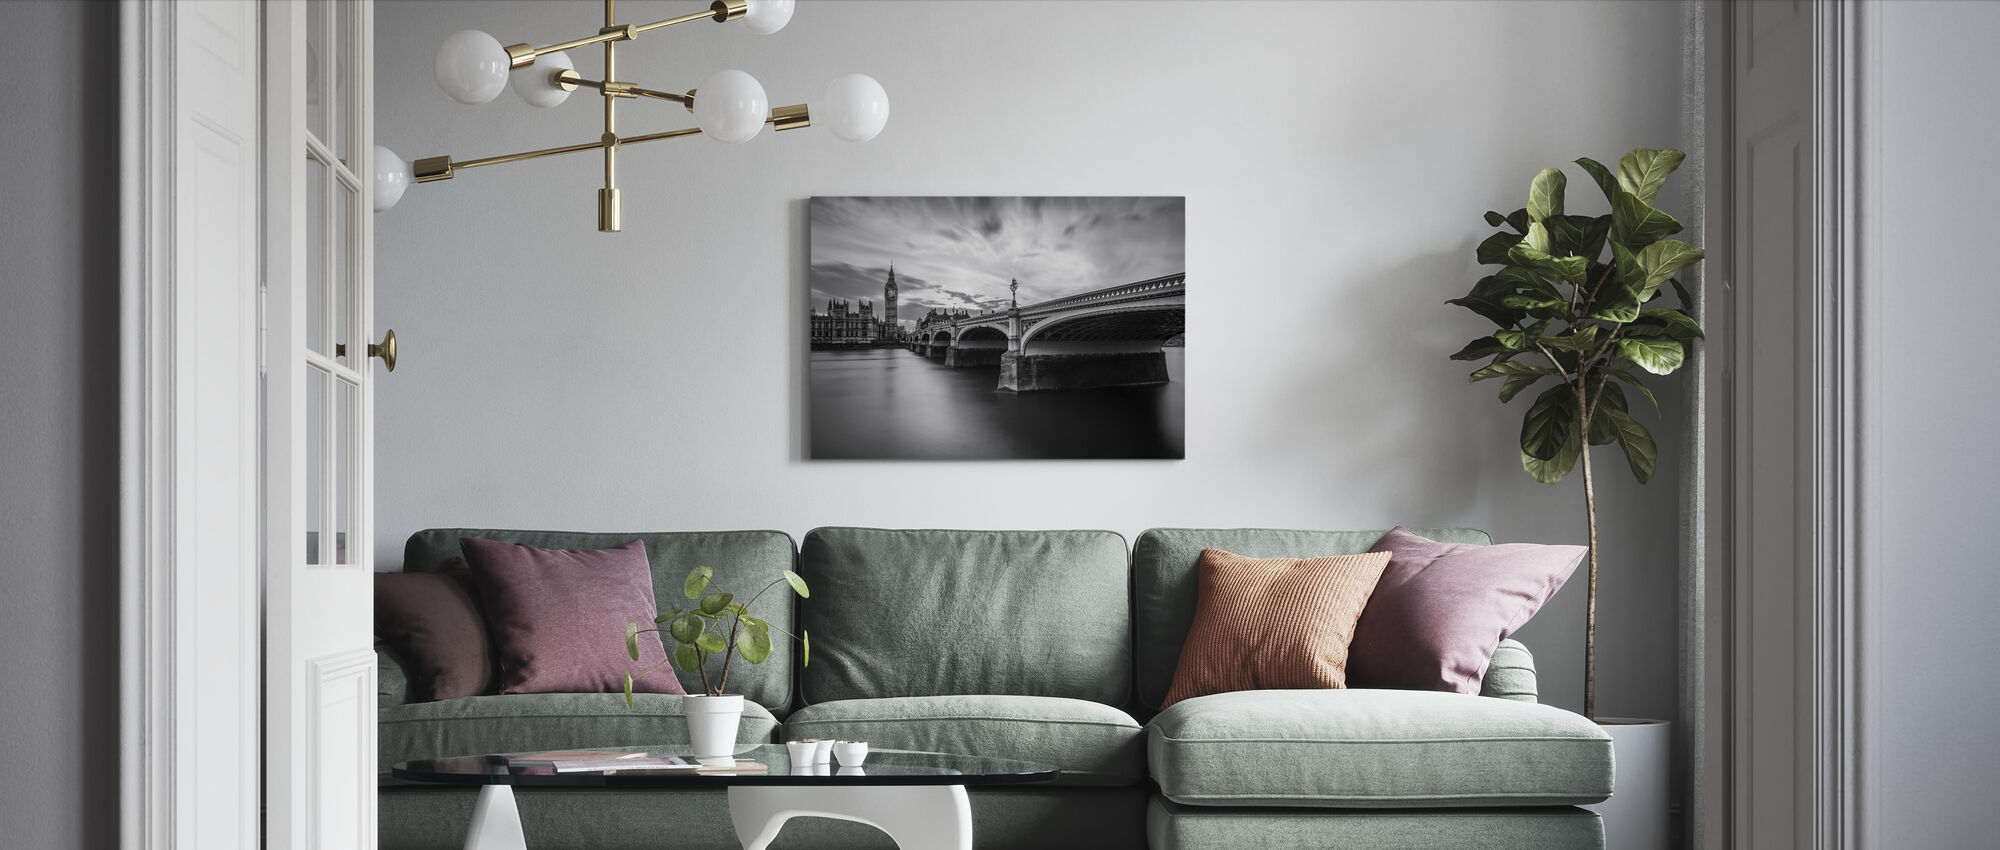 Westminster Serenity - Canvas print - Living Room